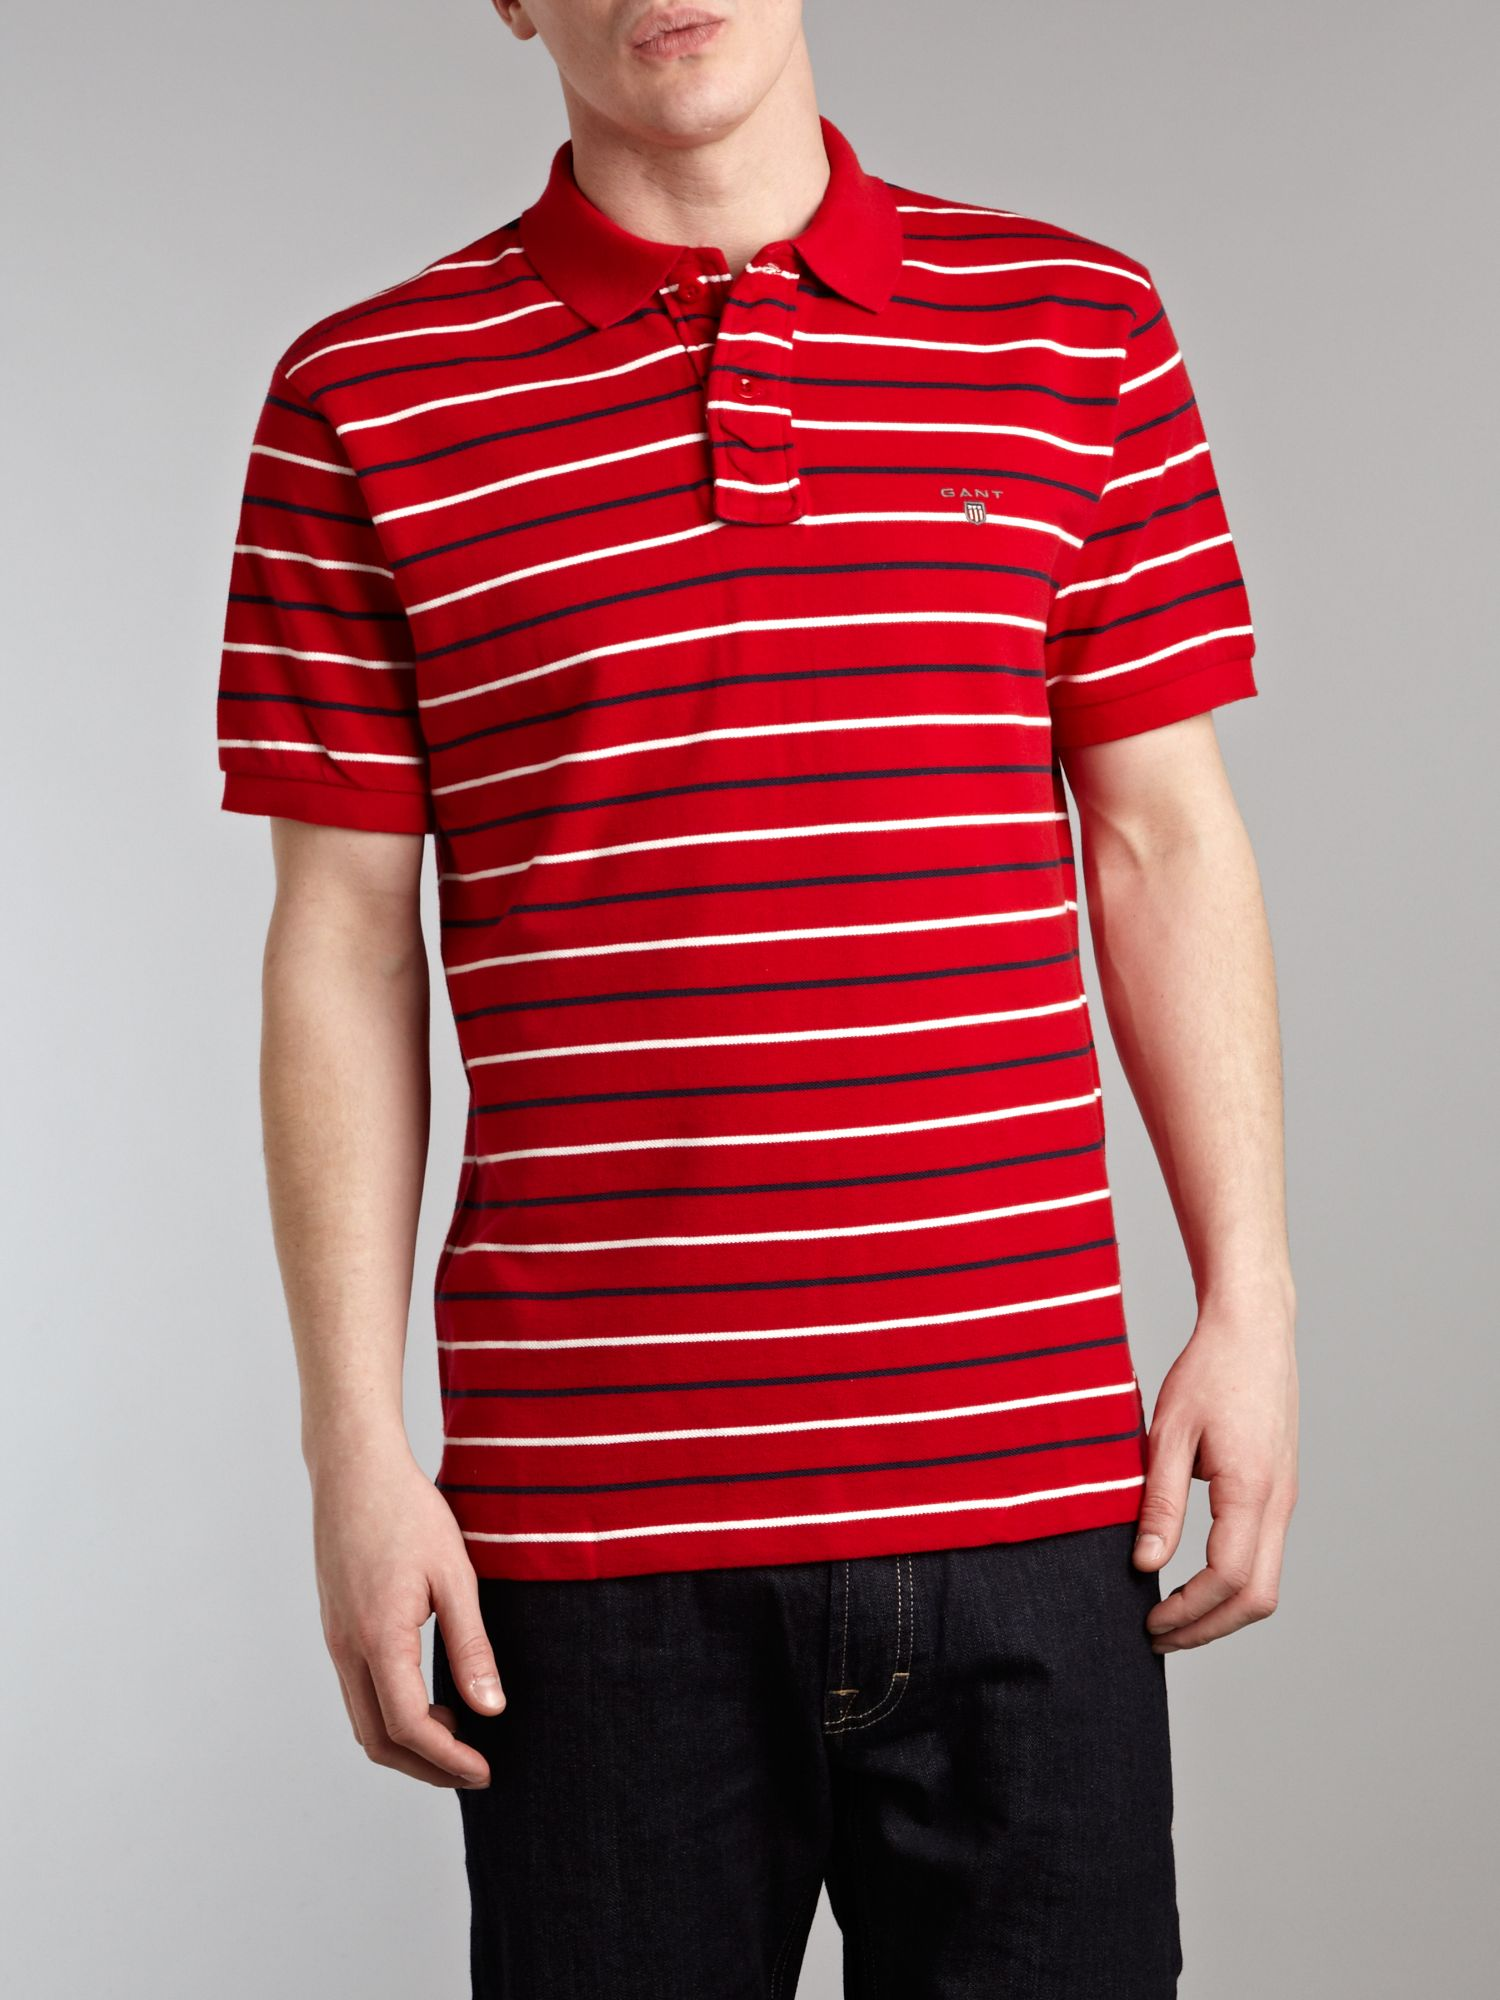 Regular fit thin stripe polo shirt